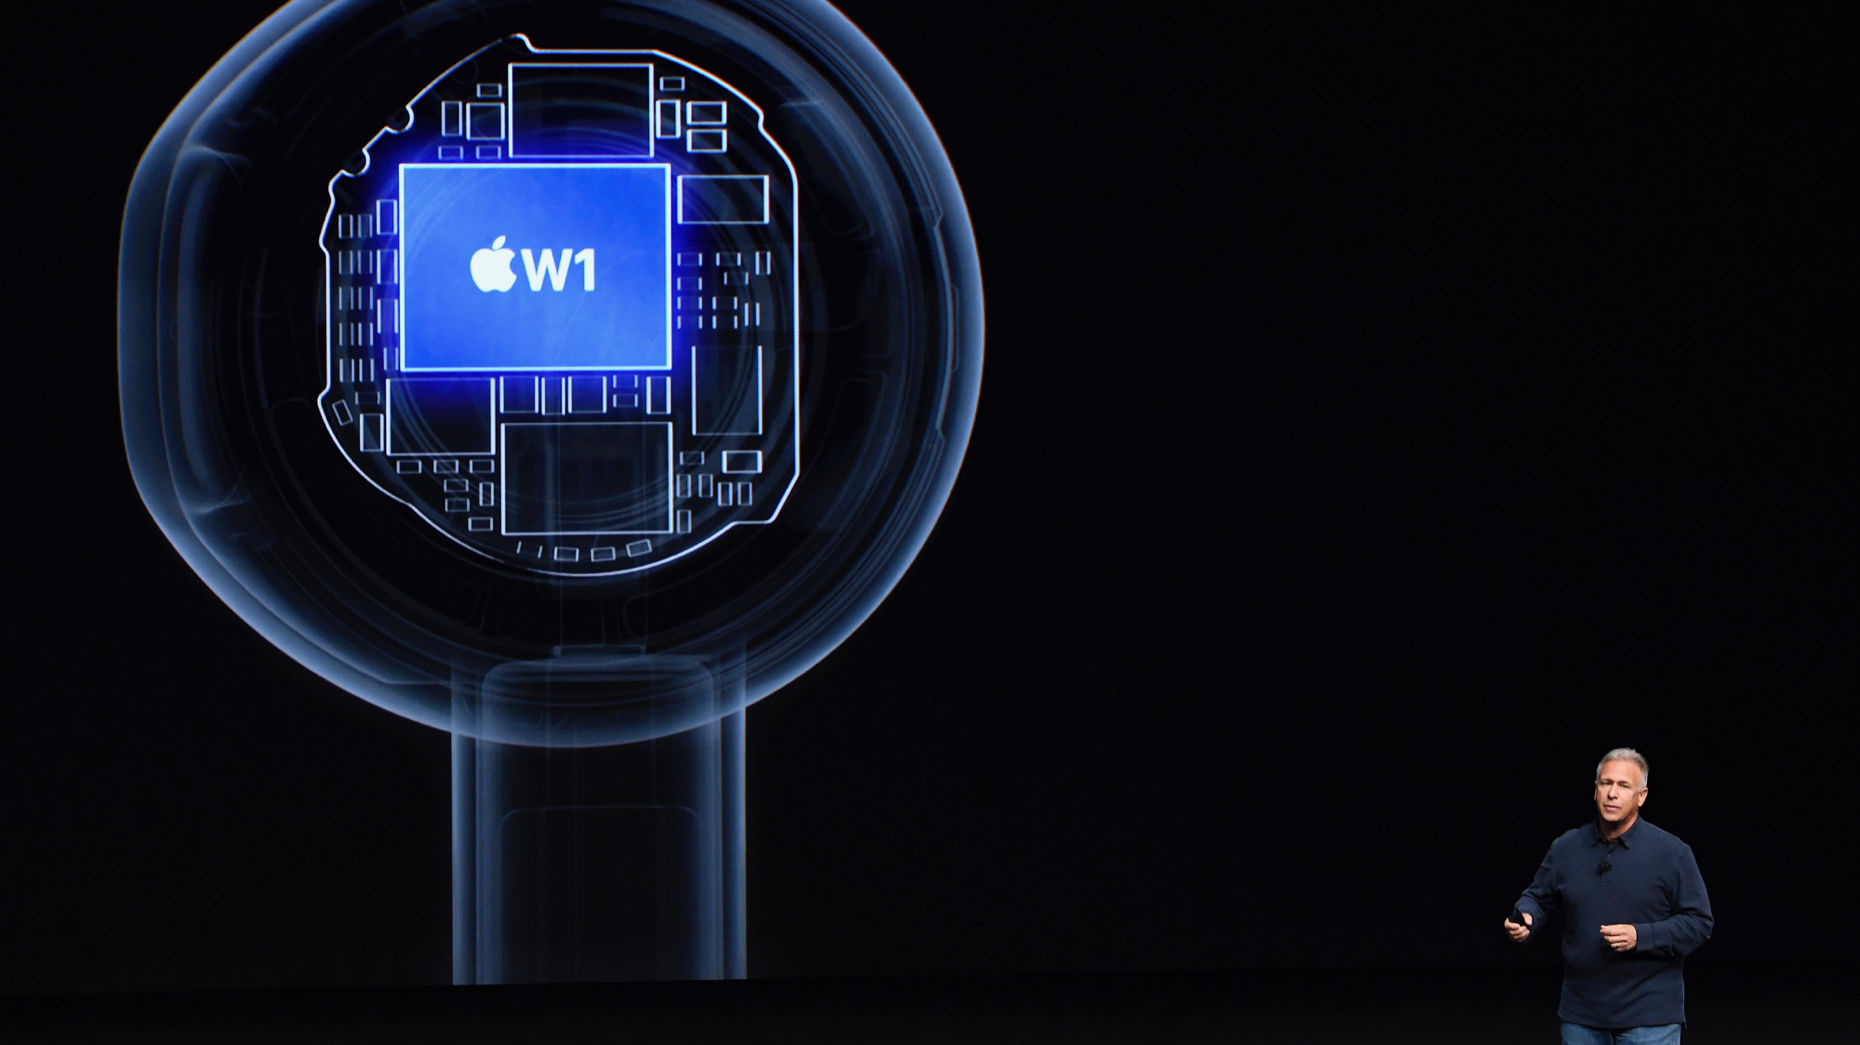 A view of an Apple wireless chip inside the company's AirPods at a 2016 event. Photo by Bloomberg